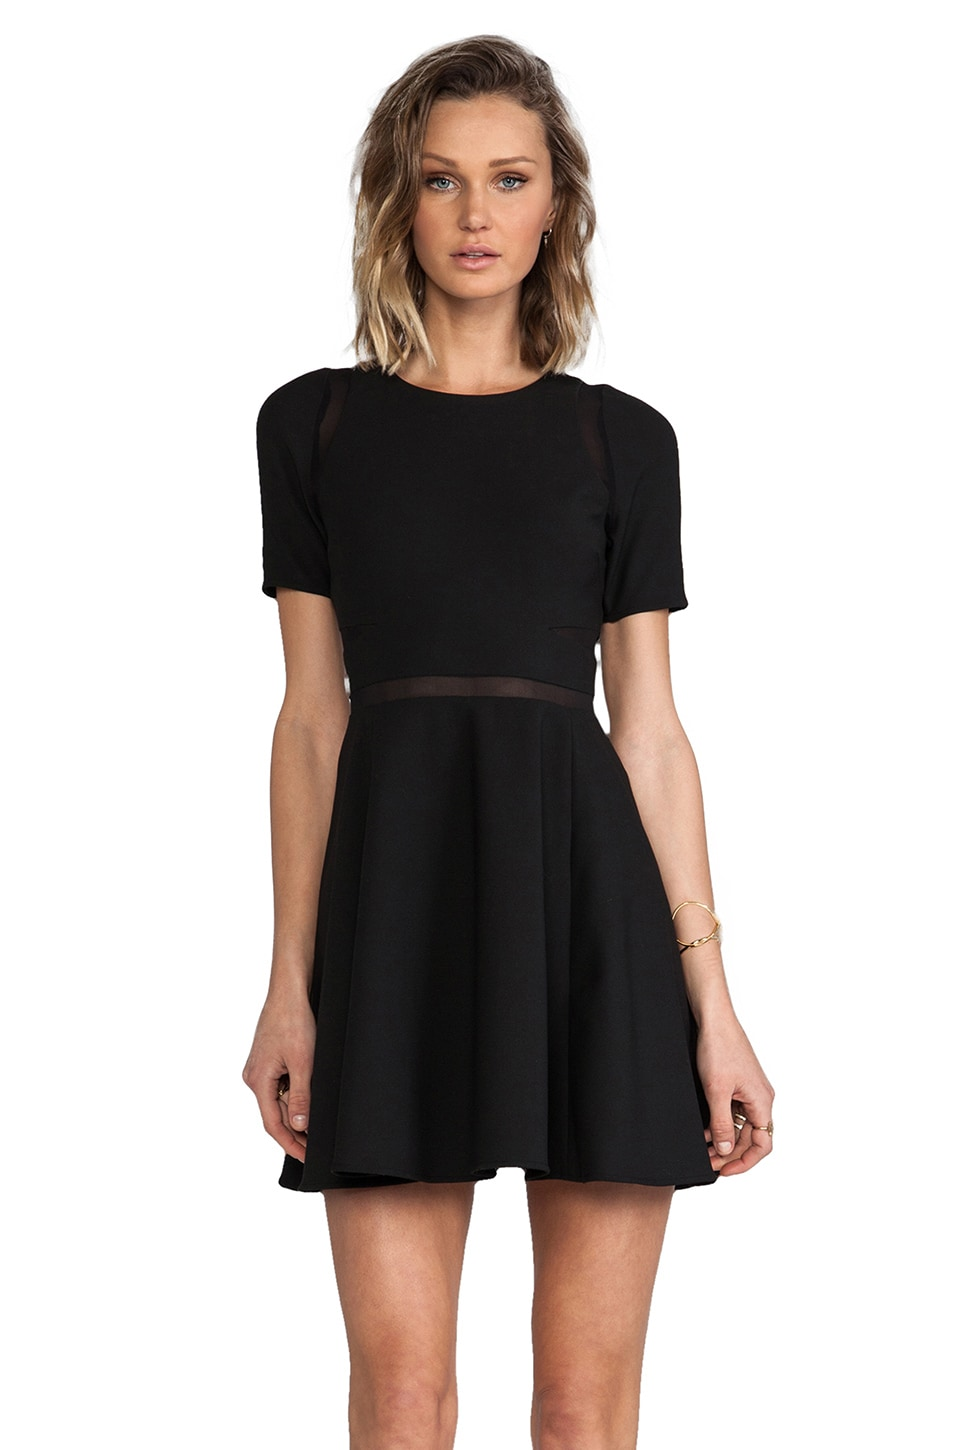 Elizabeth and James Andi Dress in Black